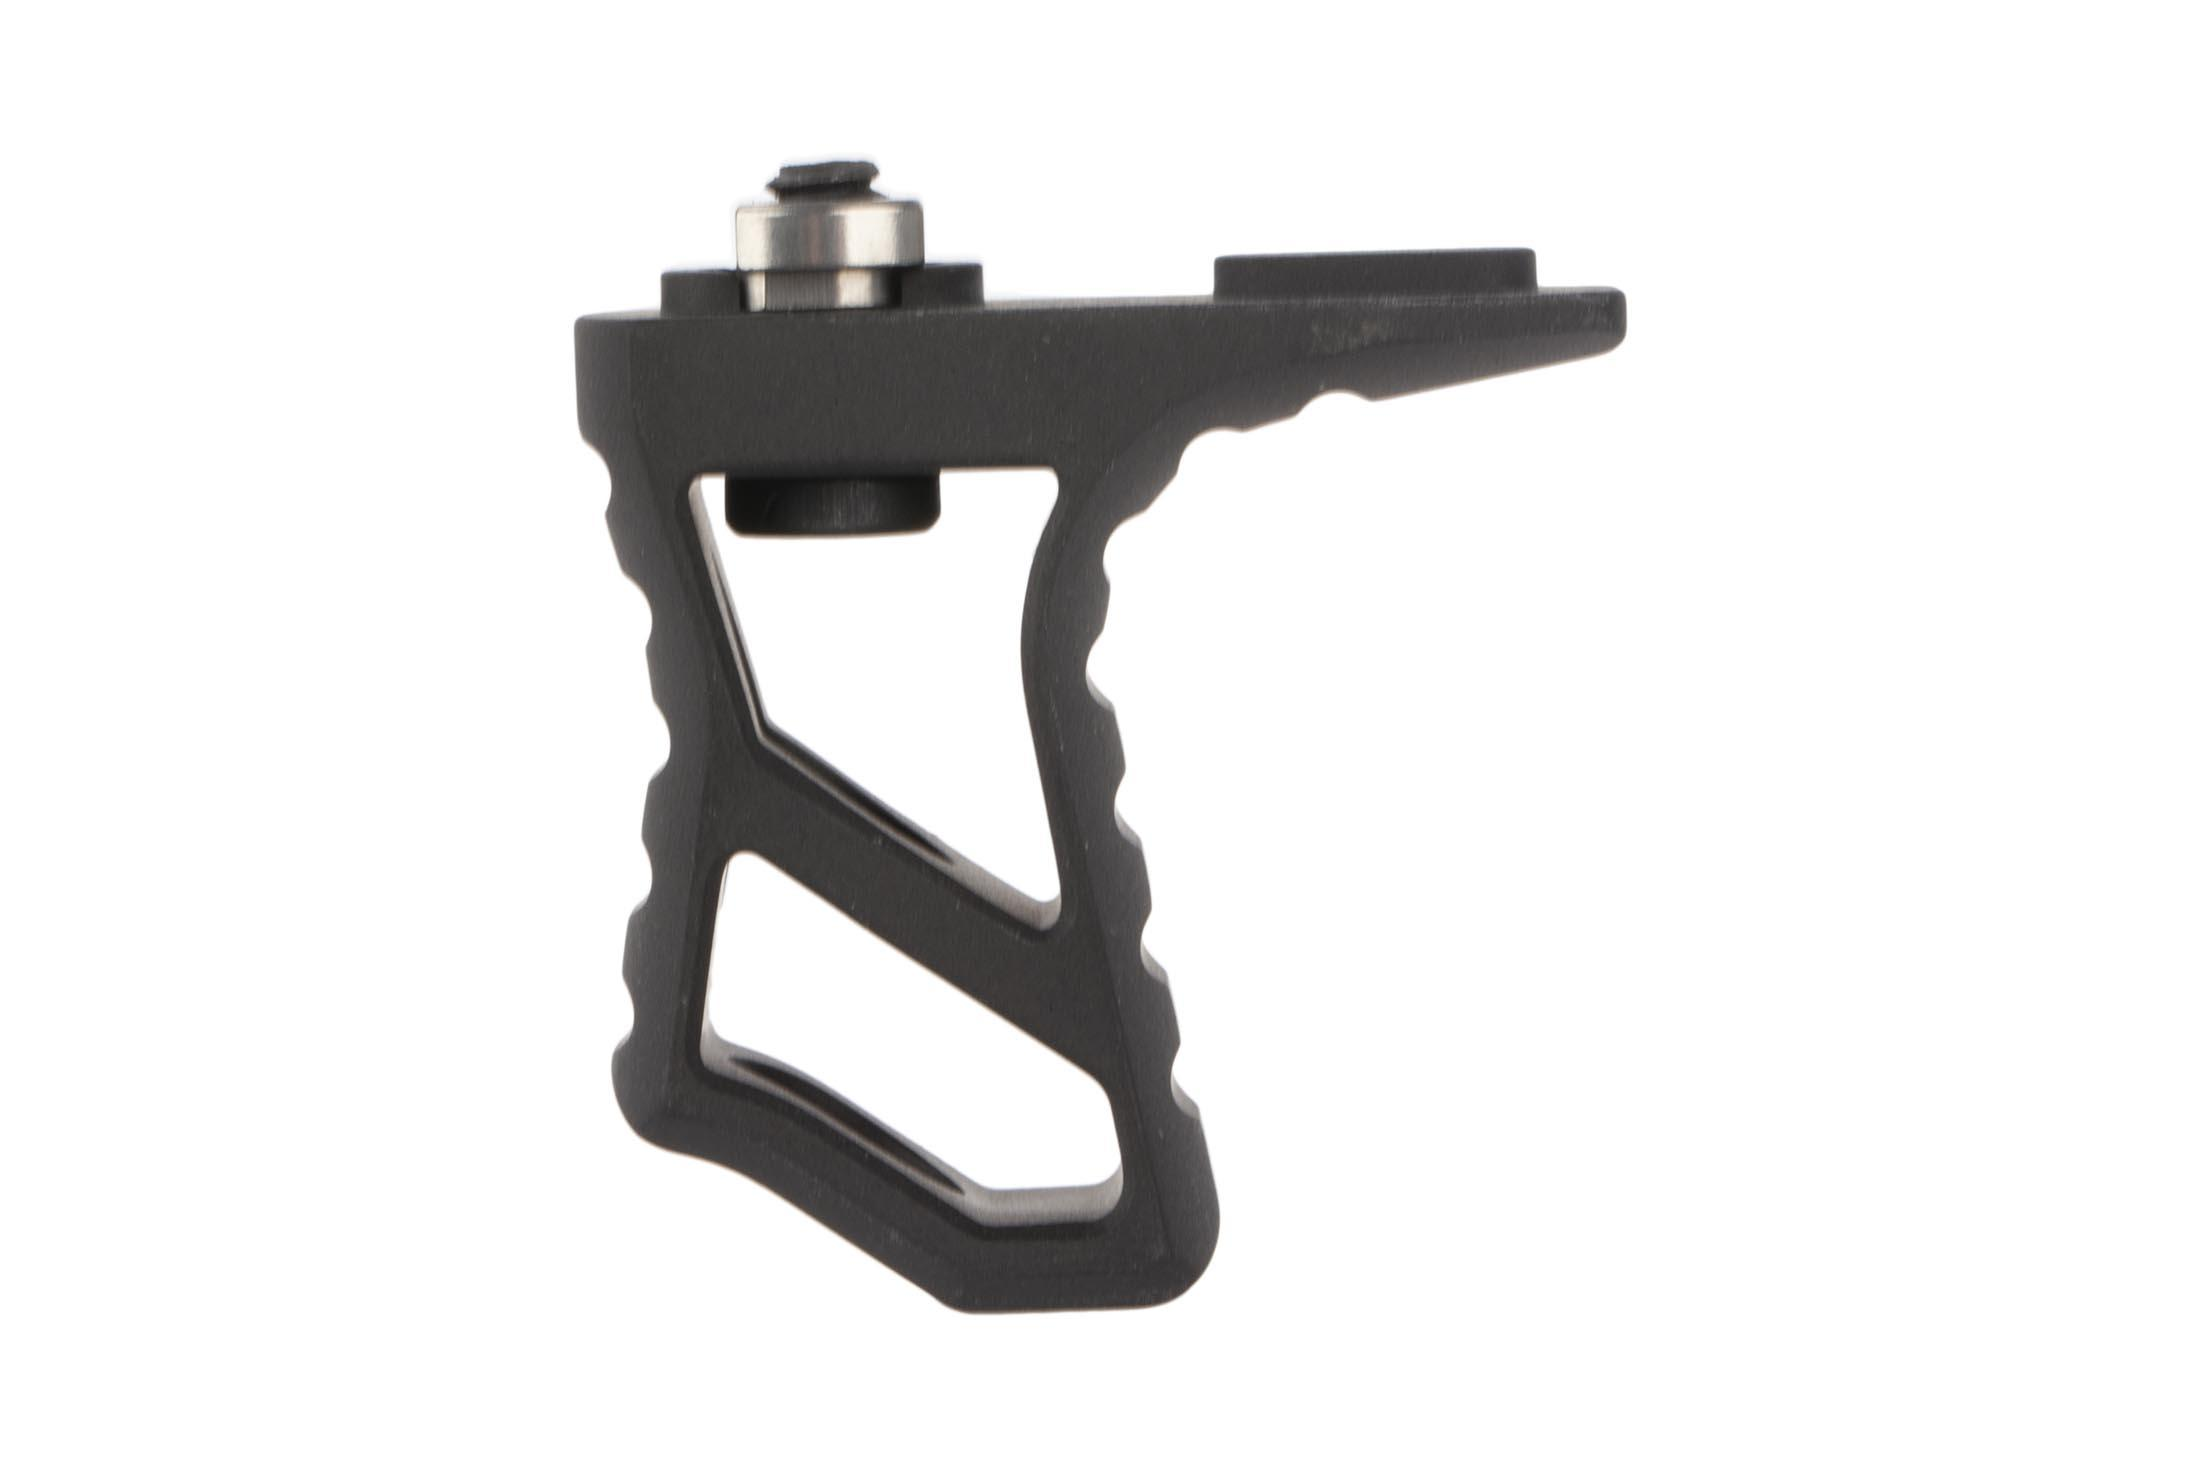 The Leapers UTG M-LOK hand stop is low profile and machined from high quality aluminum